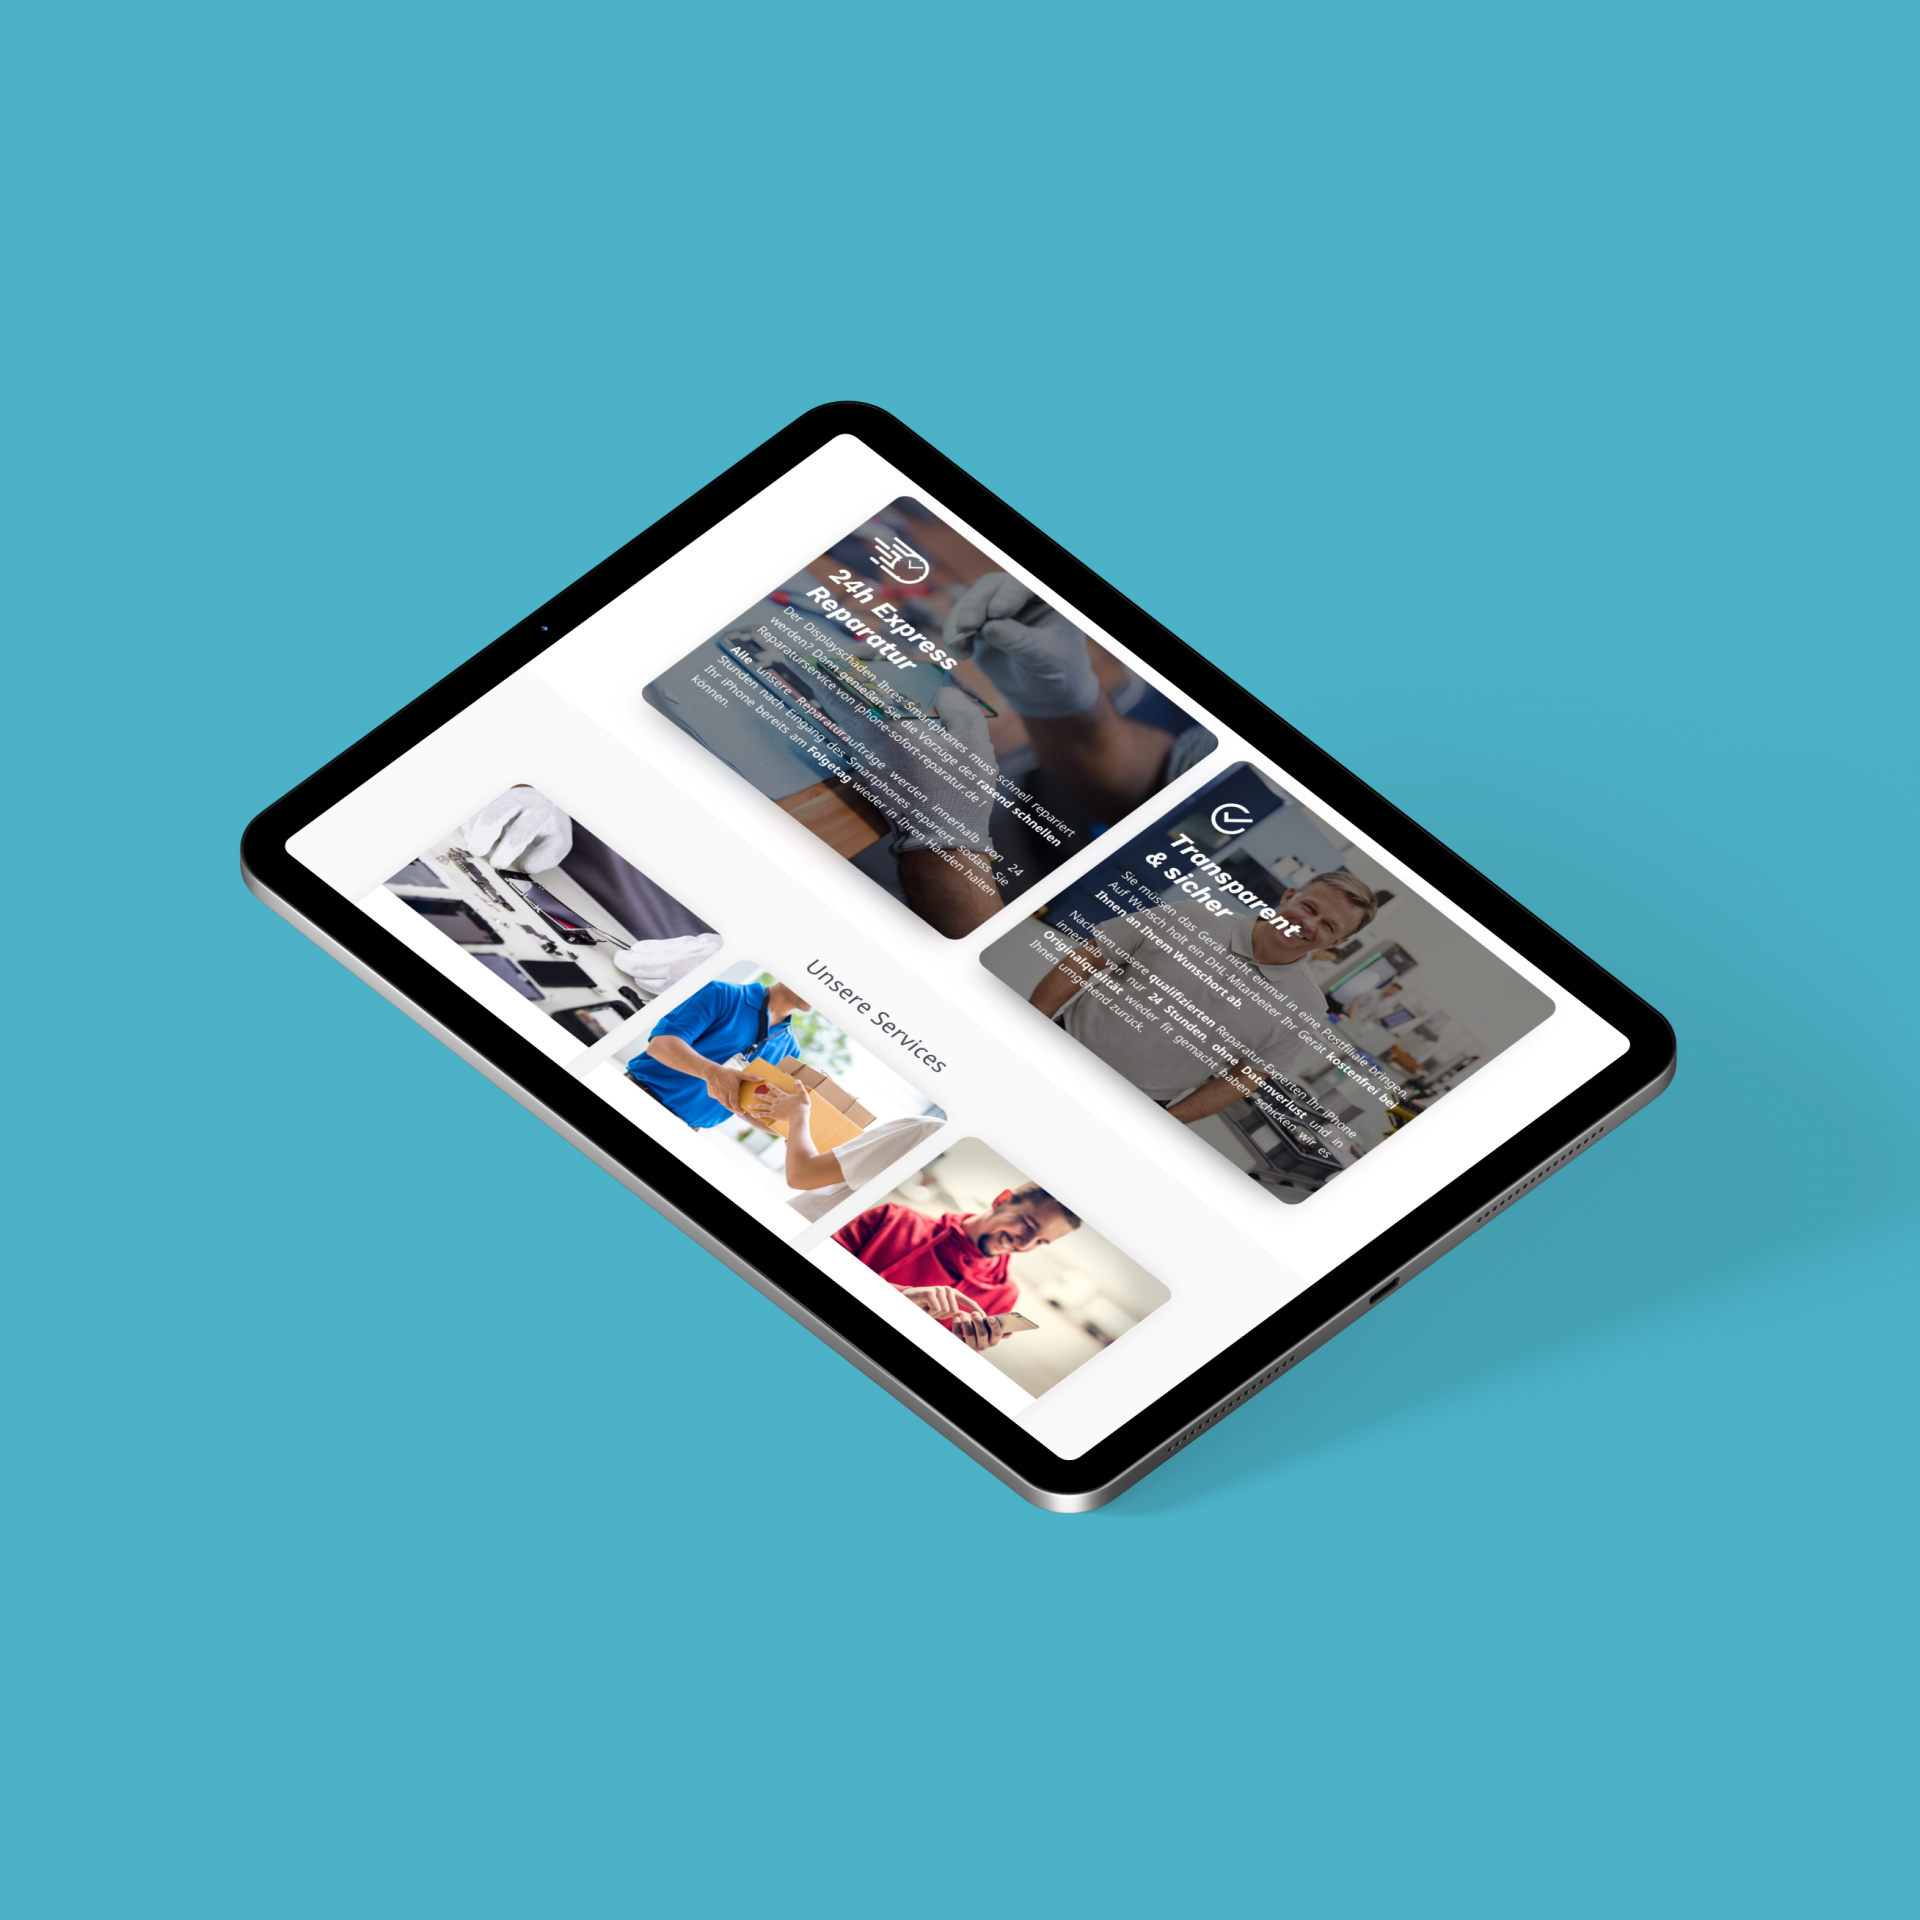 isr shopify service selling case study ipad mockup